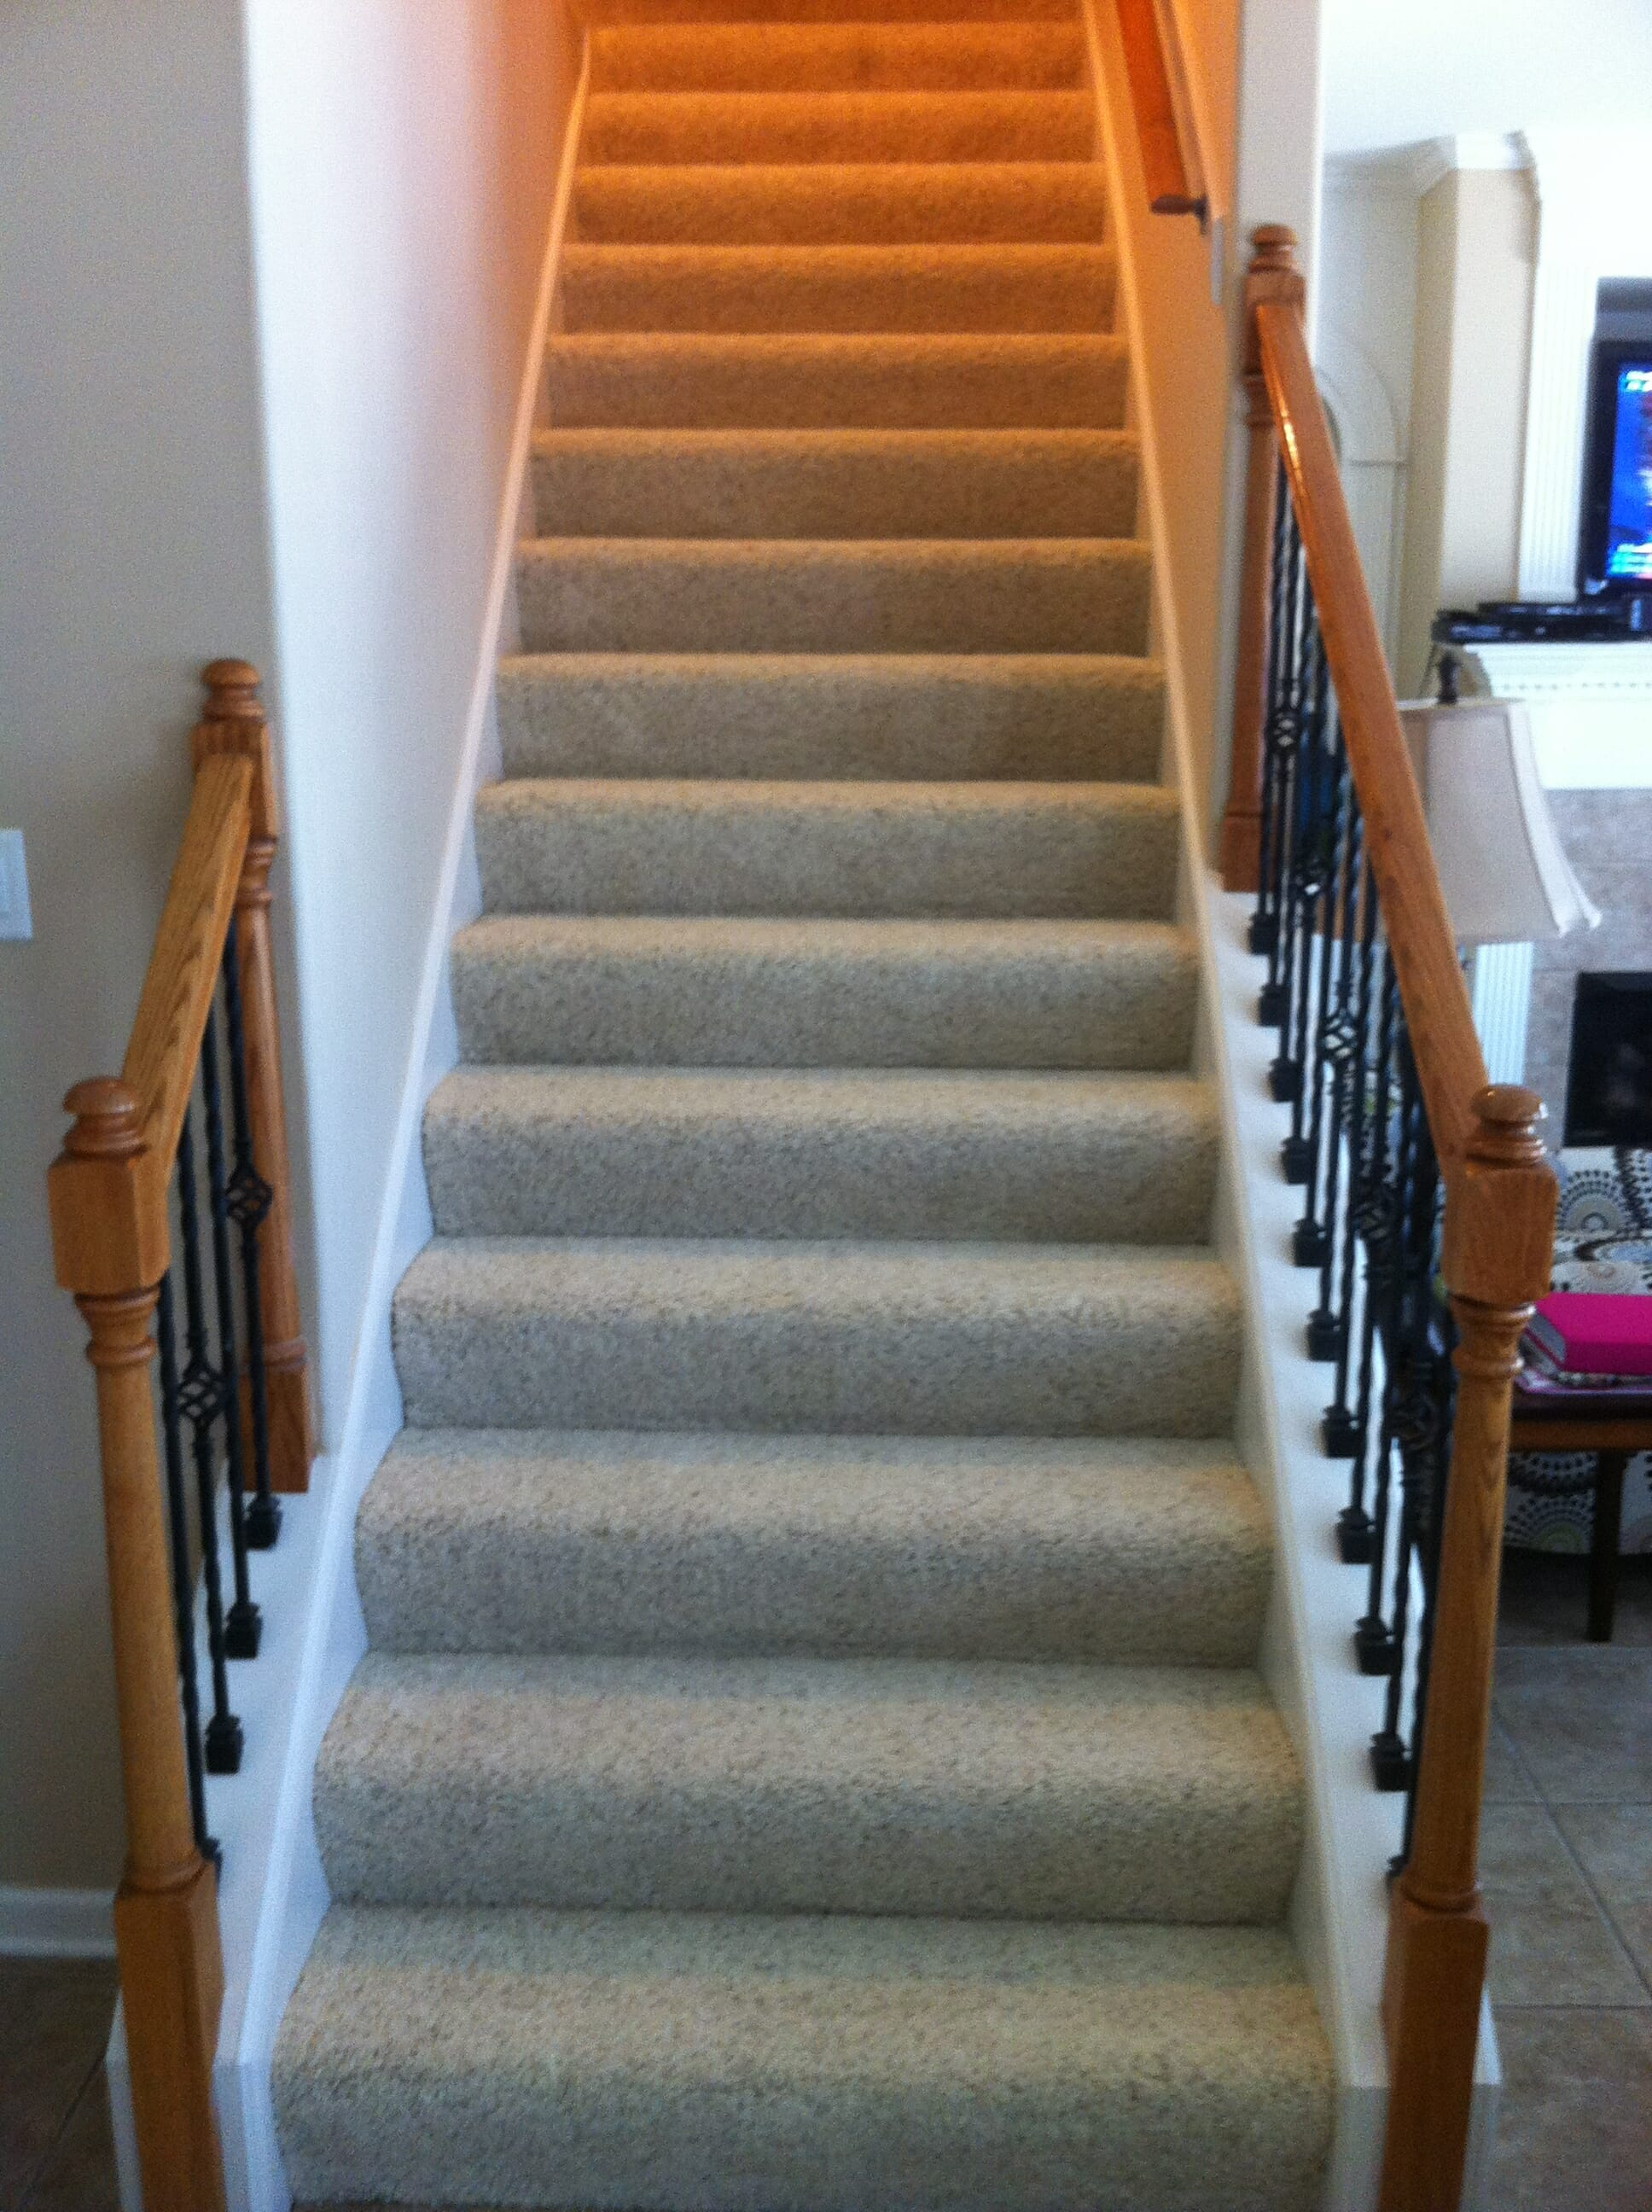 https://modernize.com/wp-content/uploads/2015/12/carpet-stairs.jpg